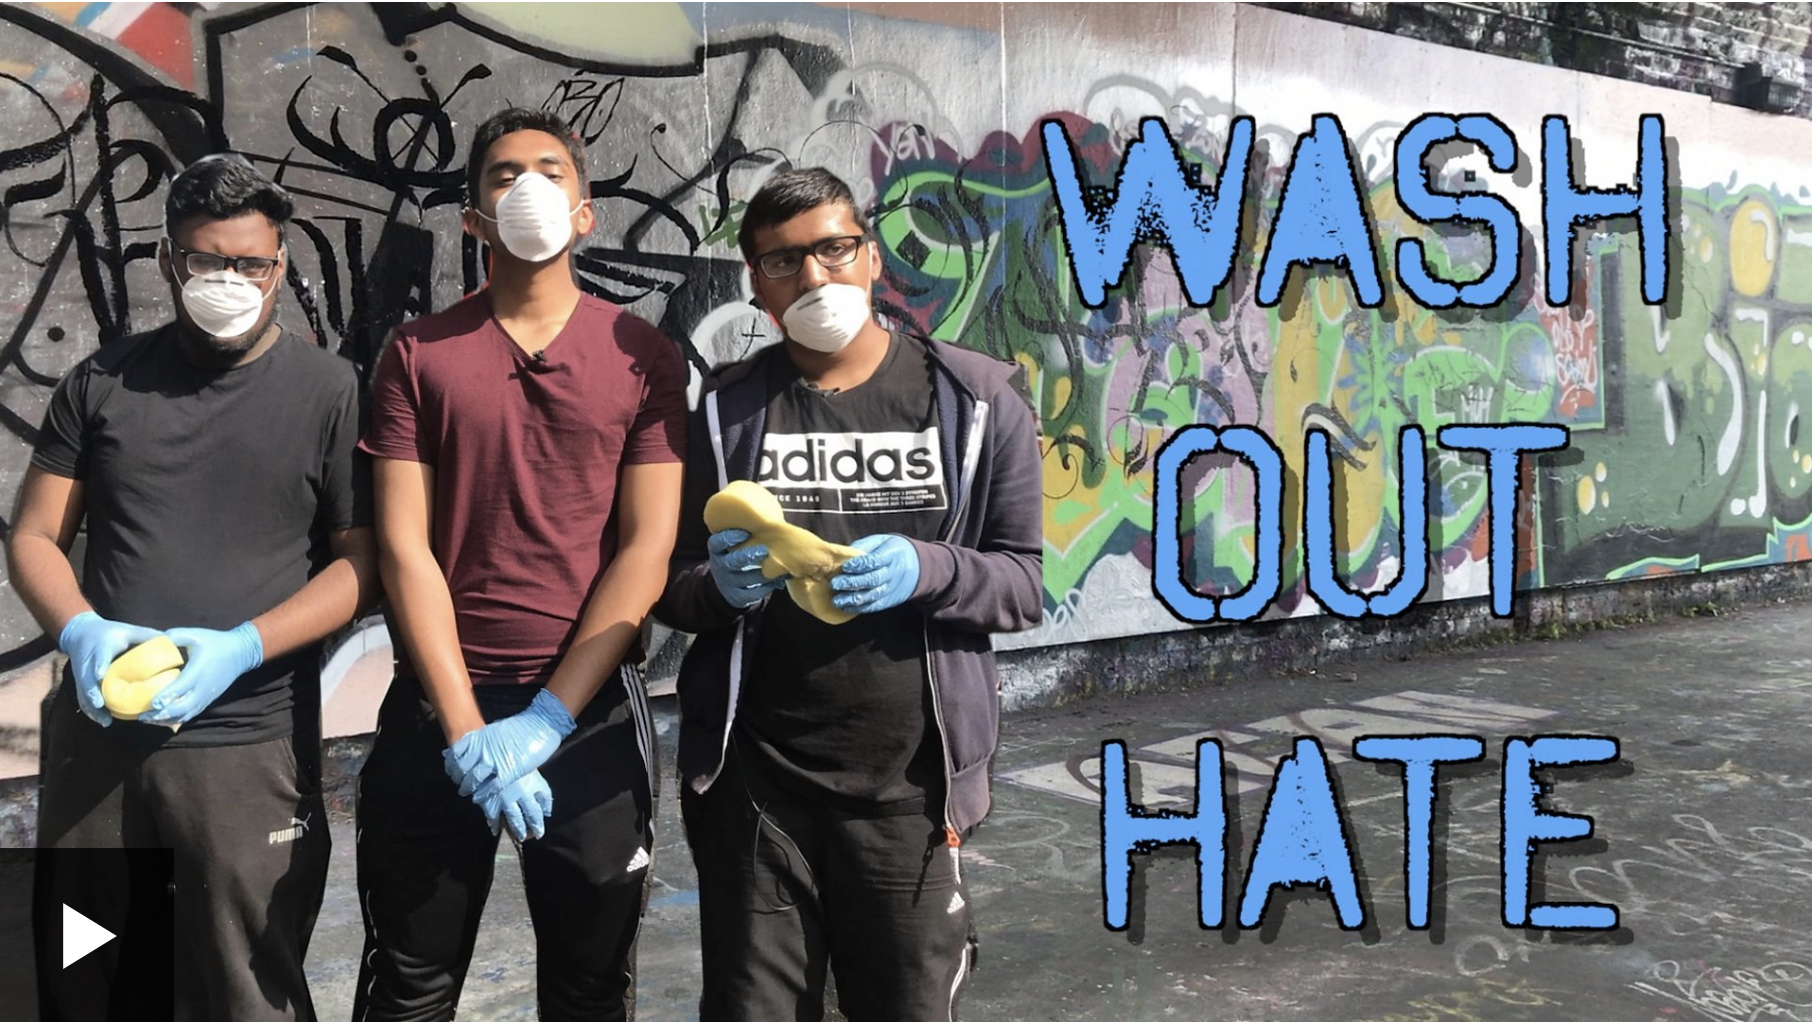 Wash out hate image